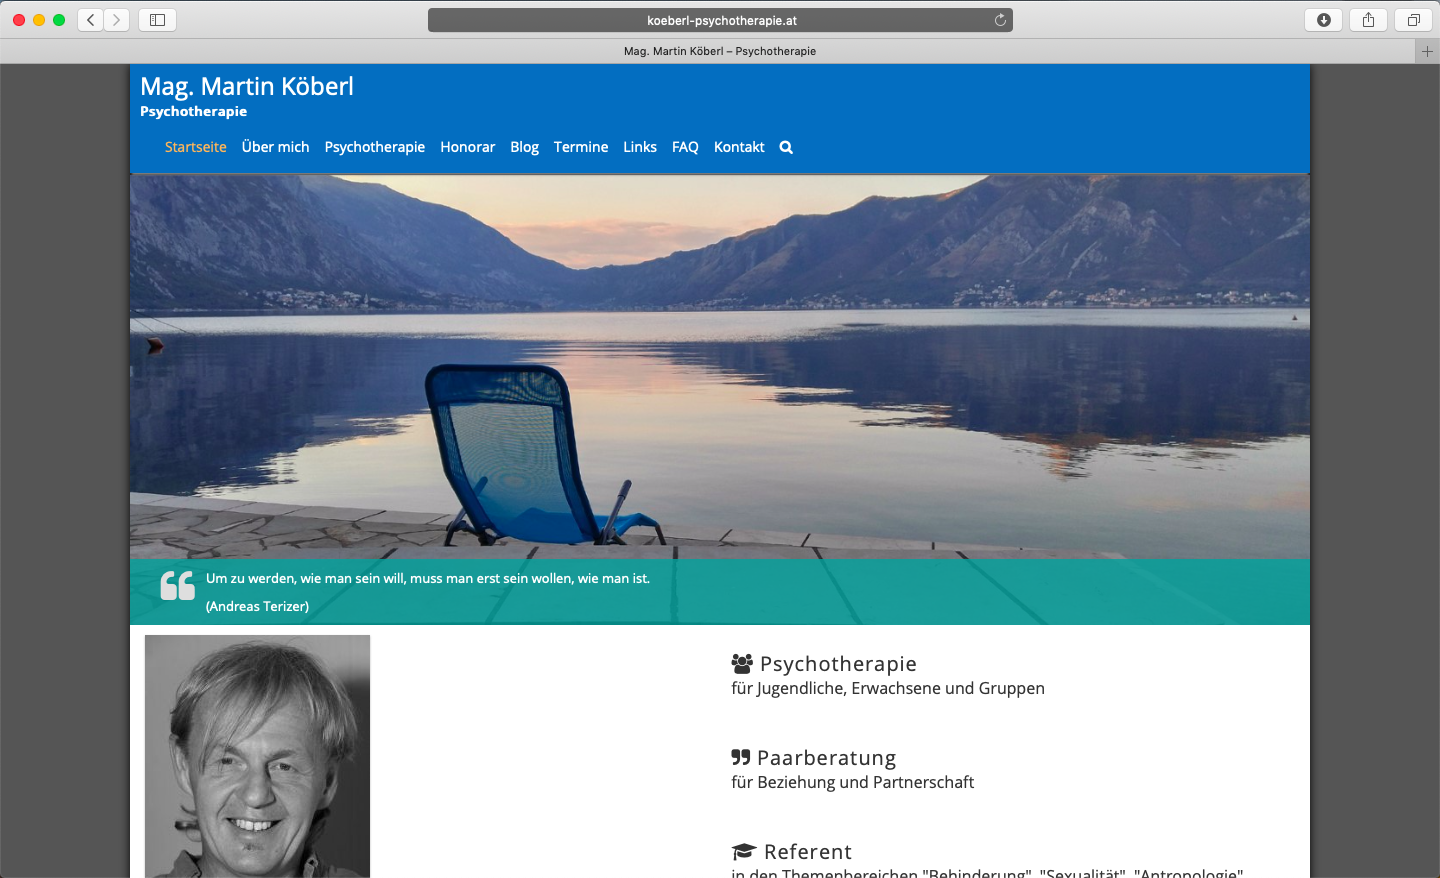 Screenshot www.koeberl-psychotherapie.at